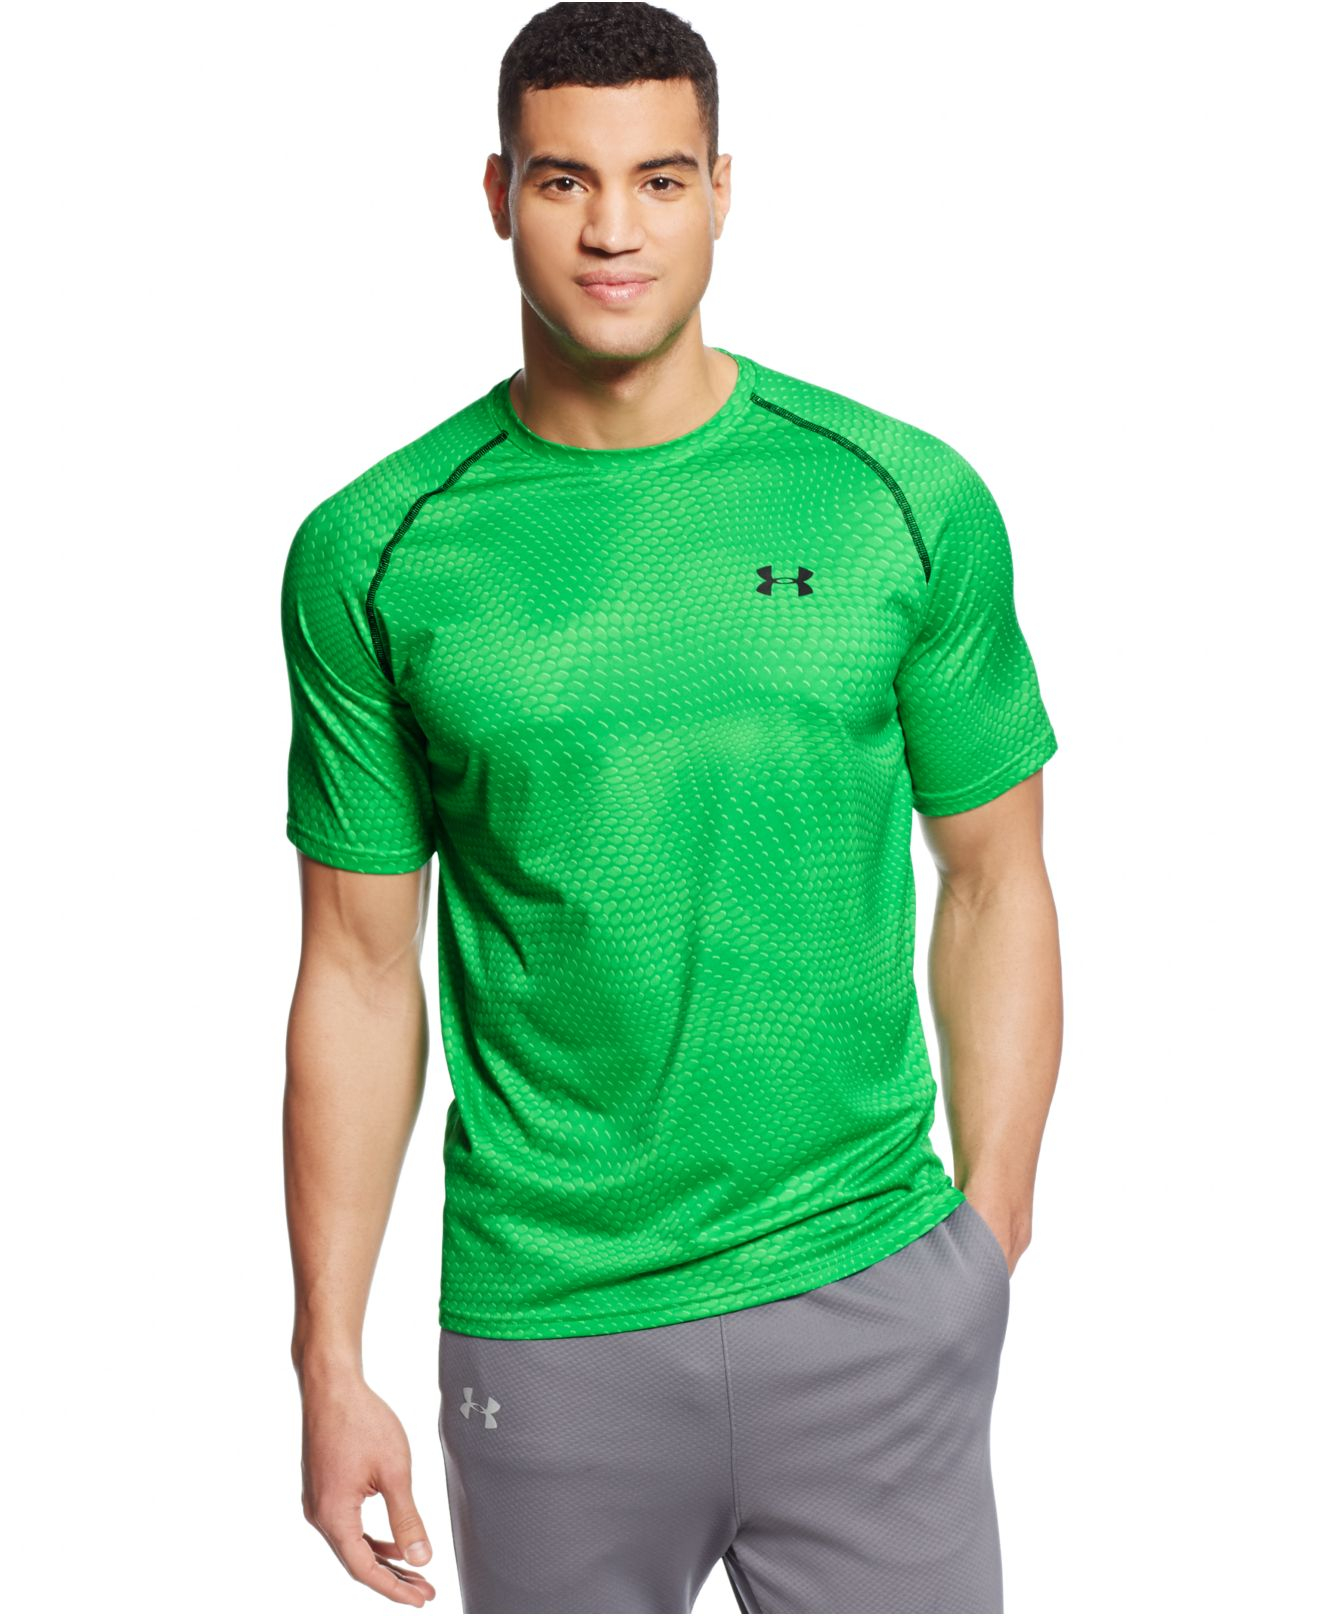 Under armour tech short sleeve t shirt in green for men lyst for Under armour i will shirt